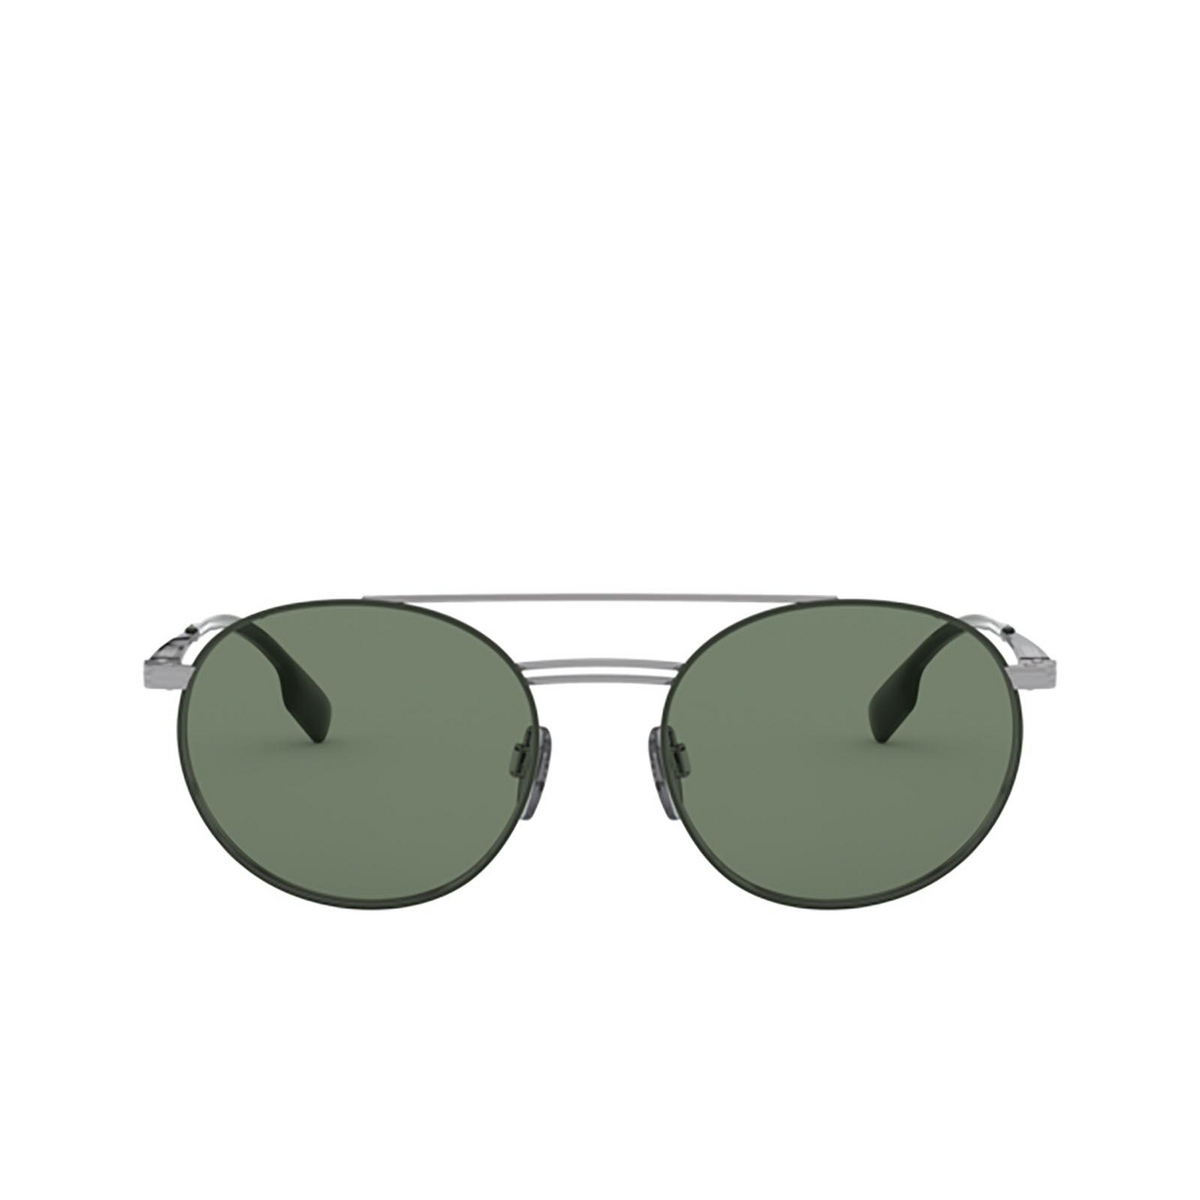 Burberry® Round Sunglasses: BE3109 color Gunmetal / Matte Green 100371 - front view.